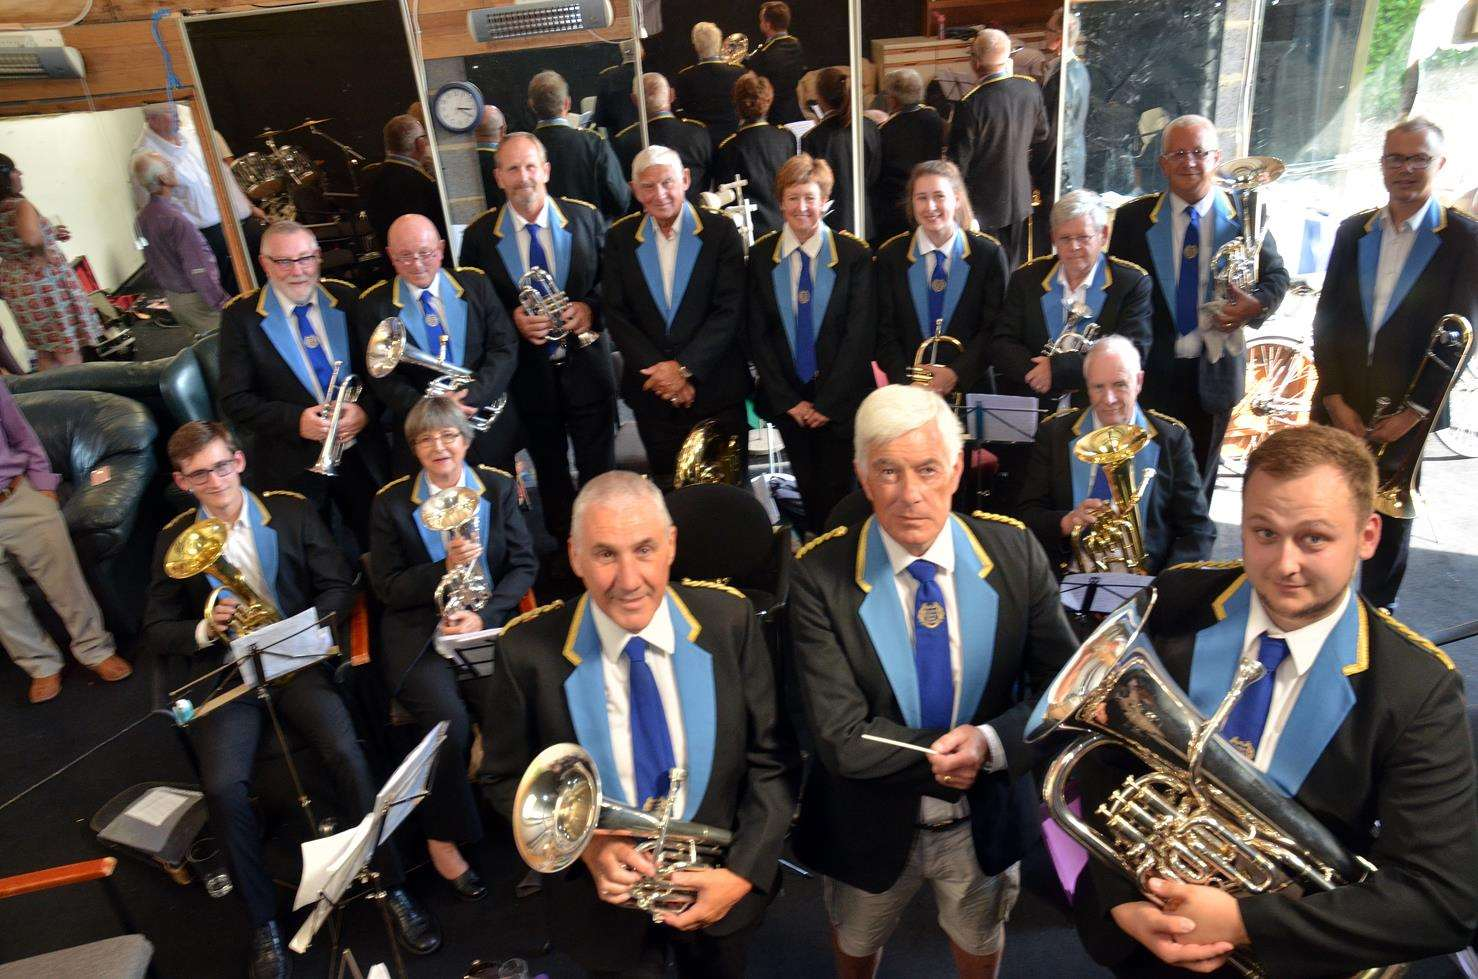 St Nicolas Players have formed a band who will wear the uniform of Murton Colliery Band, County Durham. Photo by Tim Wilson. 050818110SG